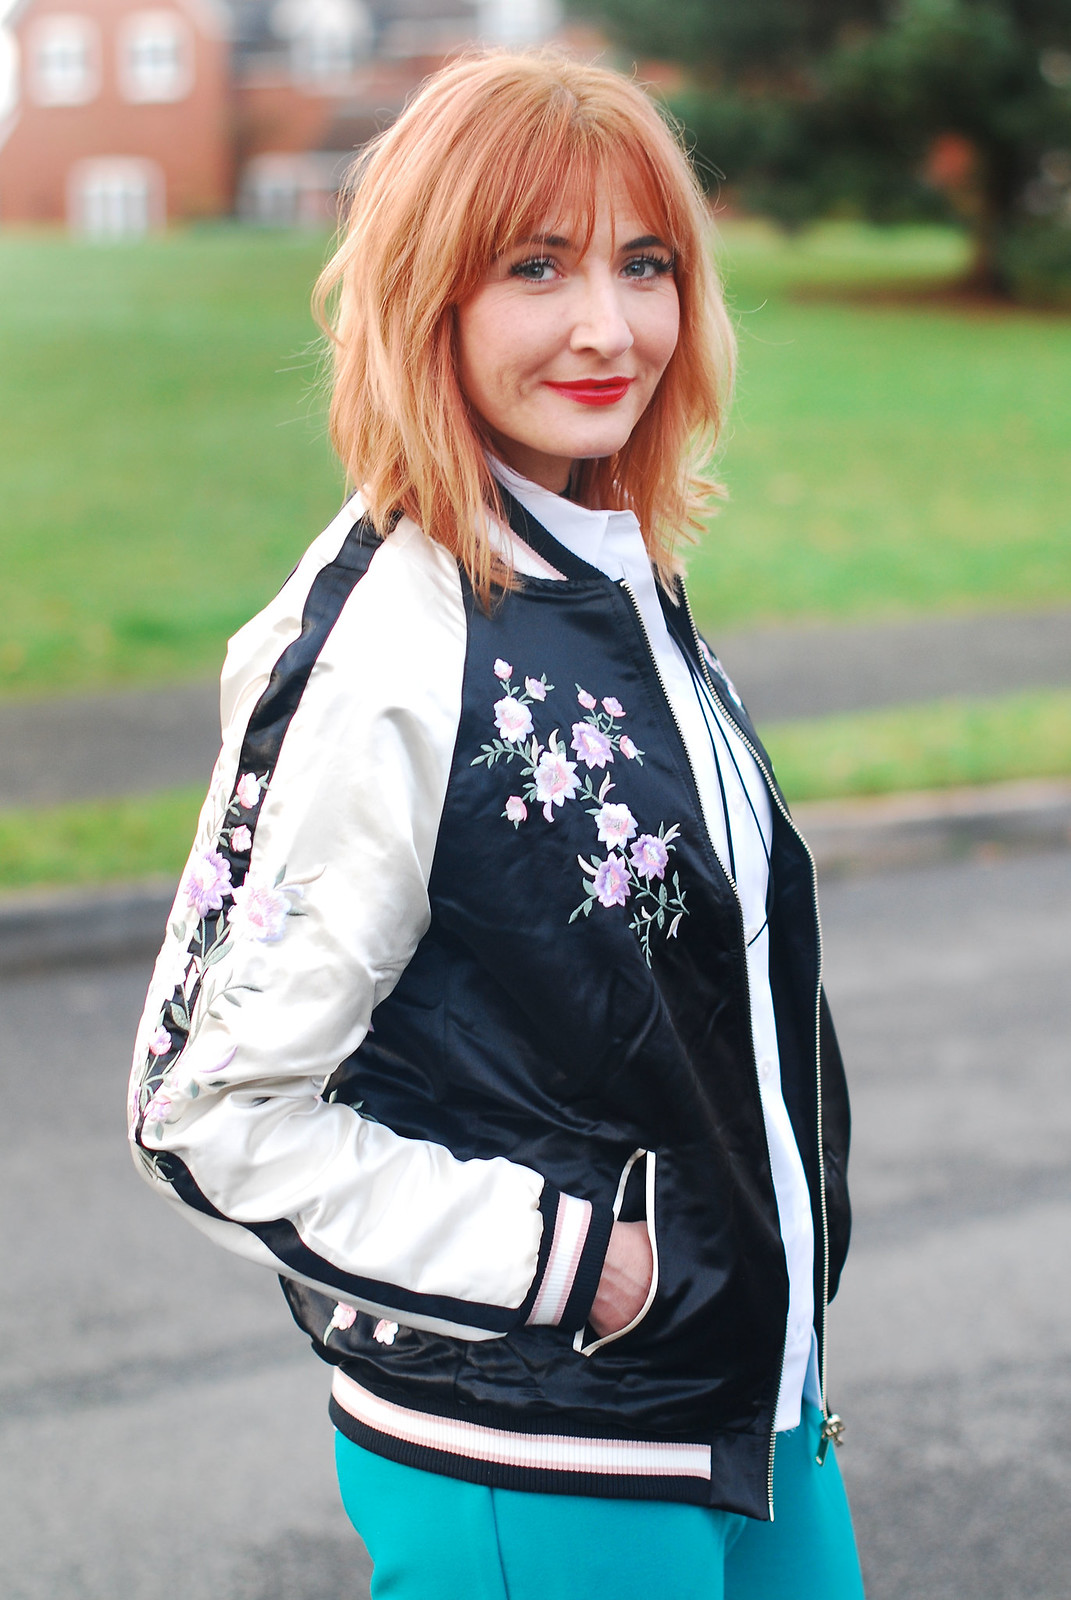 Smart casual weekend wear  floral embroidered bomber jacket  emerald green peg leg trousers  black block heel shoes  white shirt  black tie-up choker necklace | Not Dressed As Lamb, over 40 style